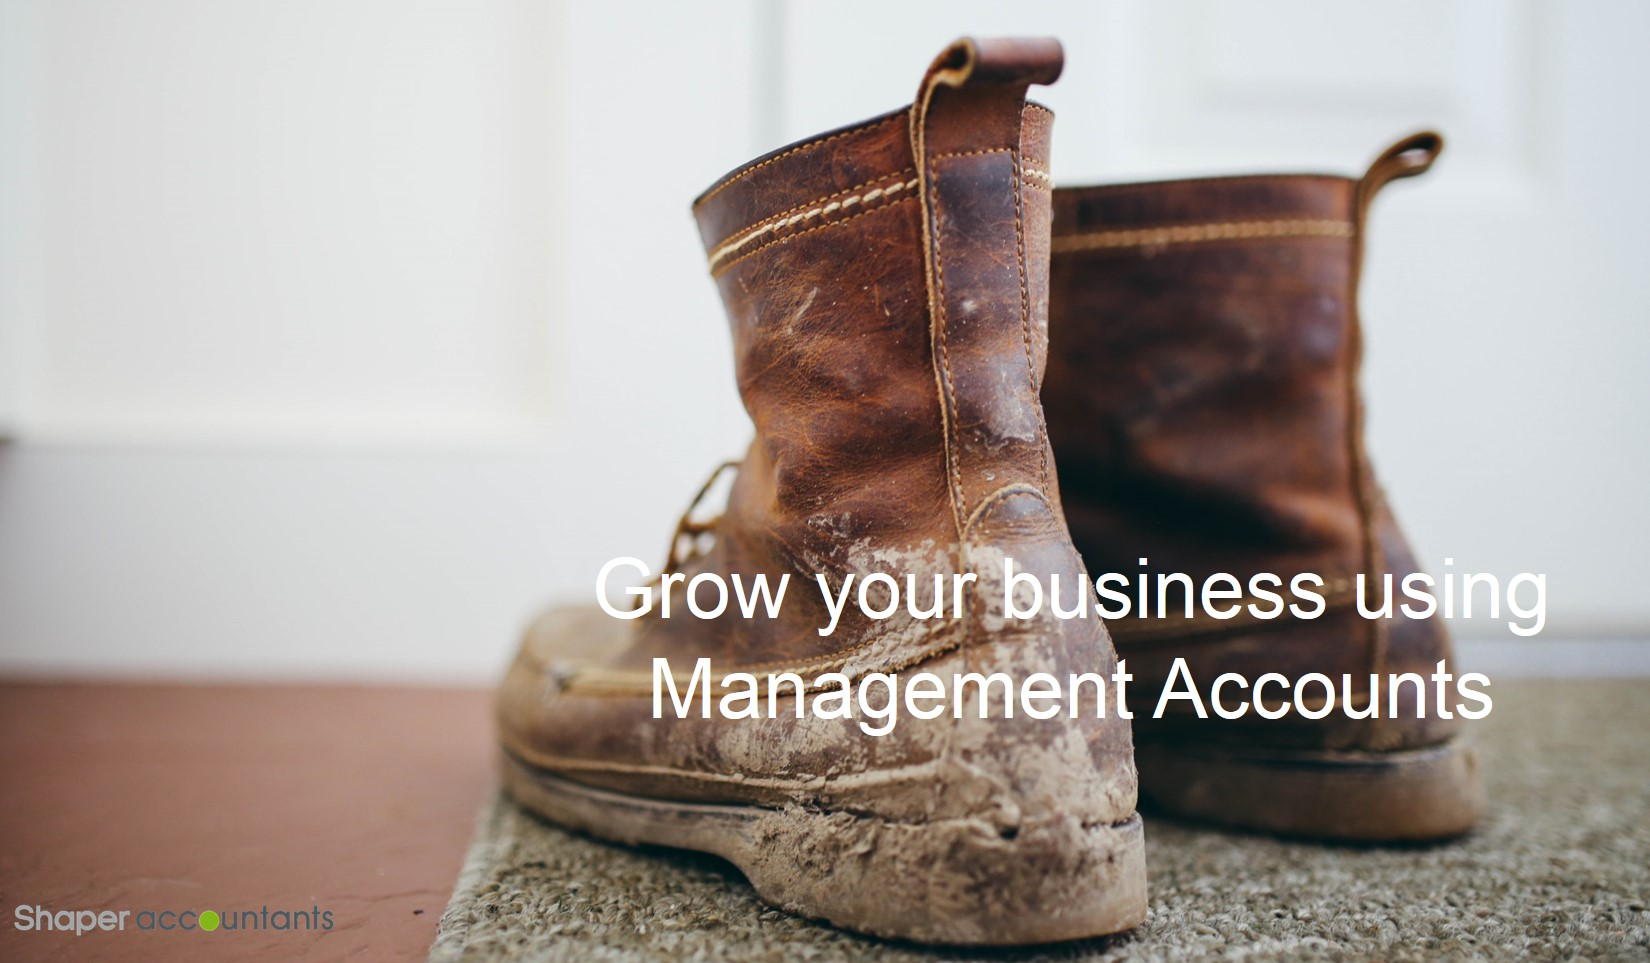 Management Accounts and Business Growth